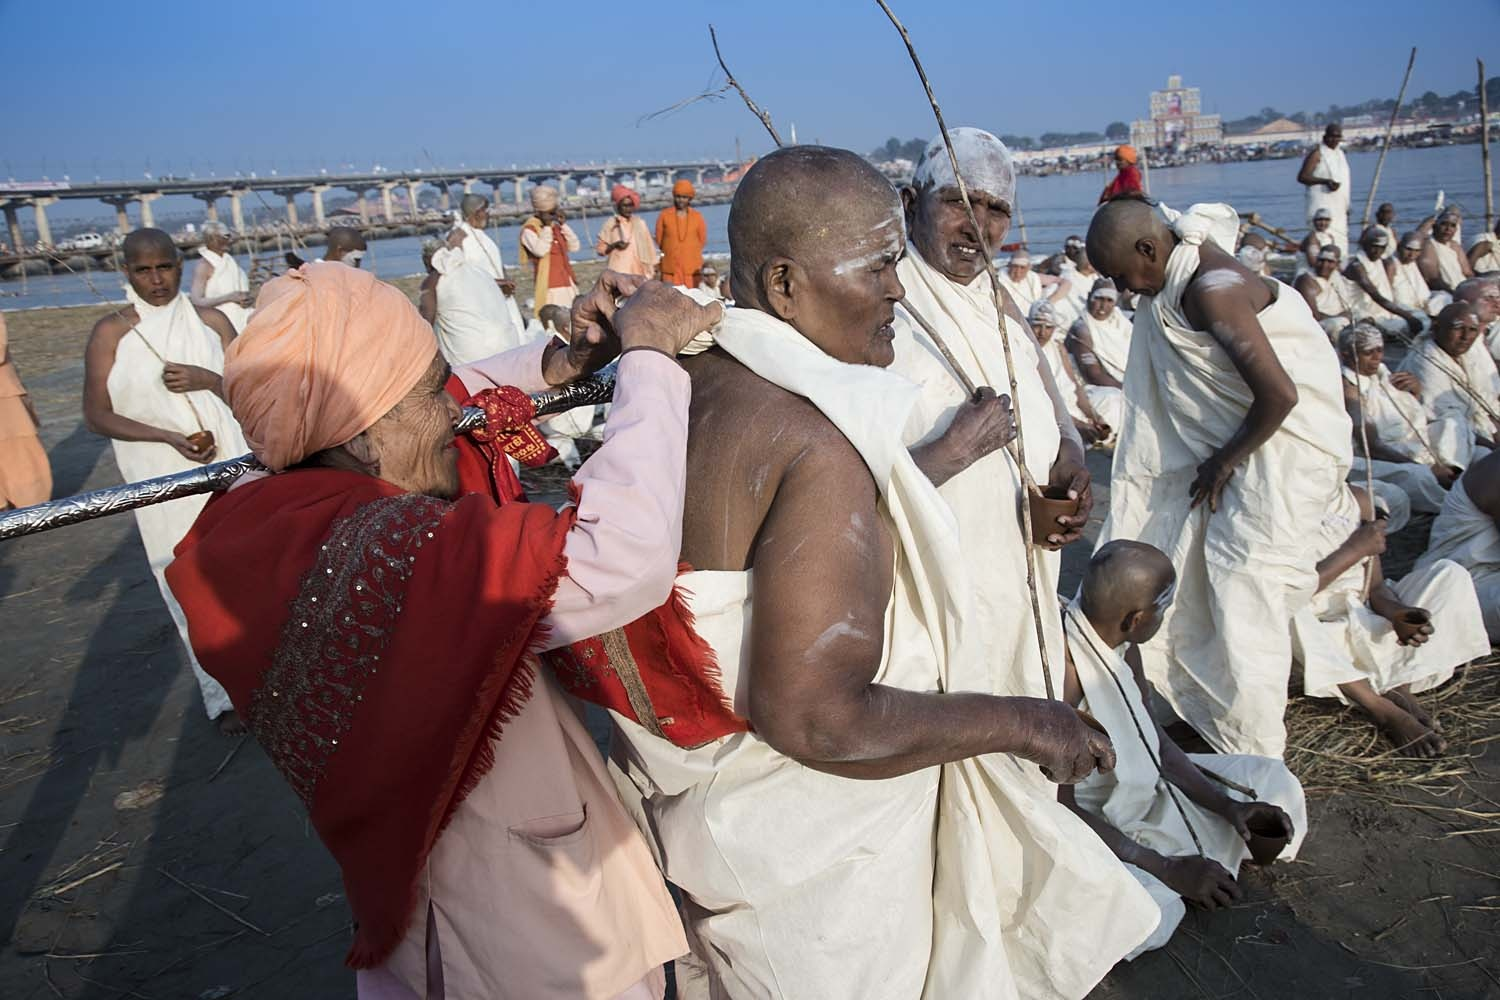 A kotwal (administrator), helps tie the langot to a woman initiate of Juna Akhara by the Ganges.